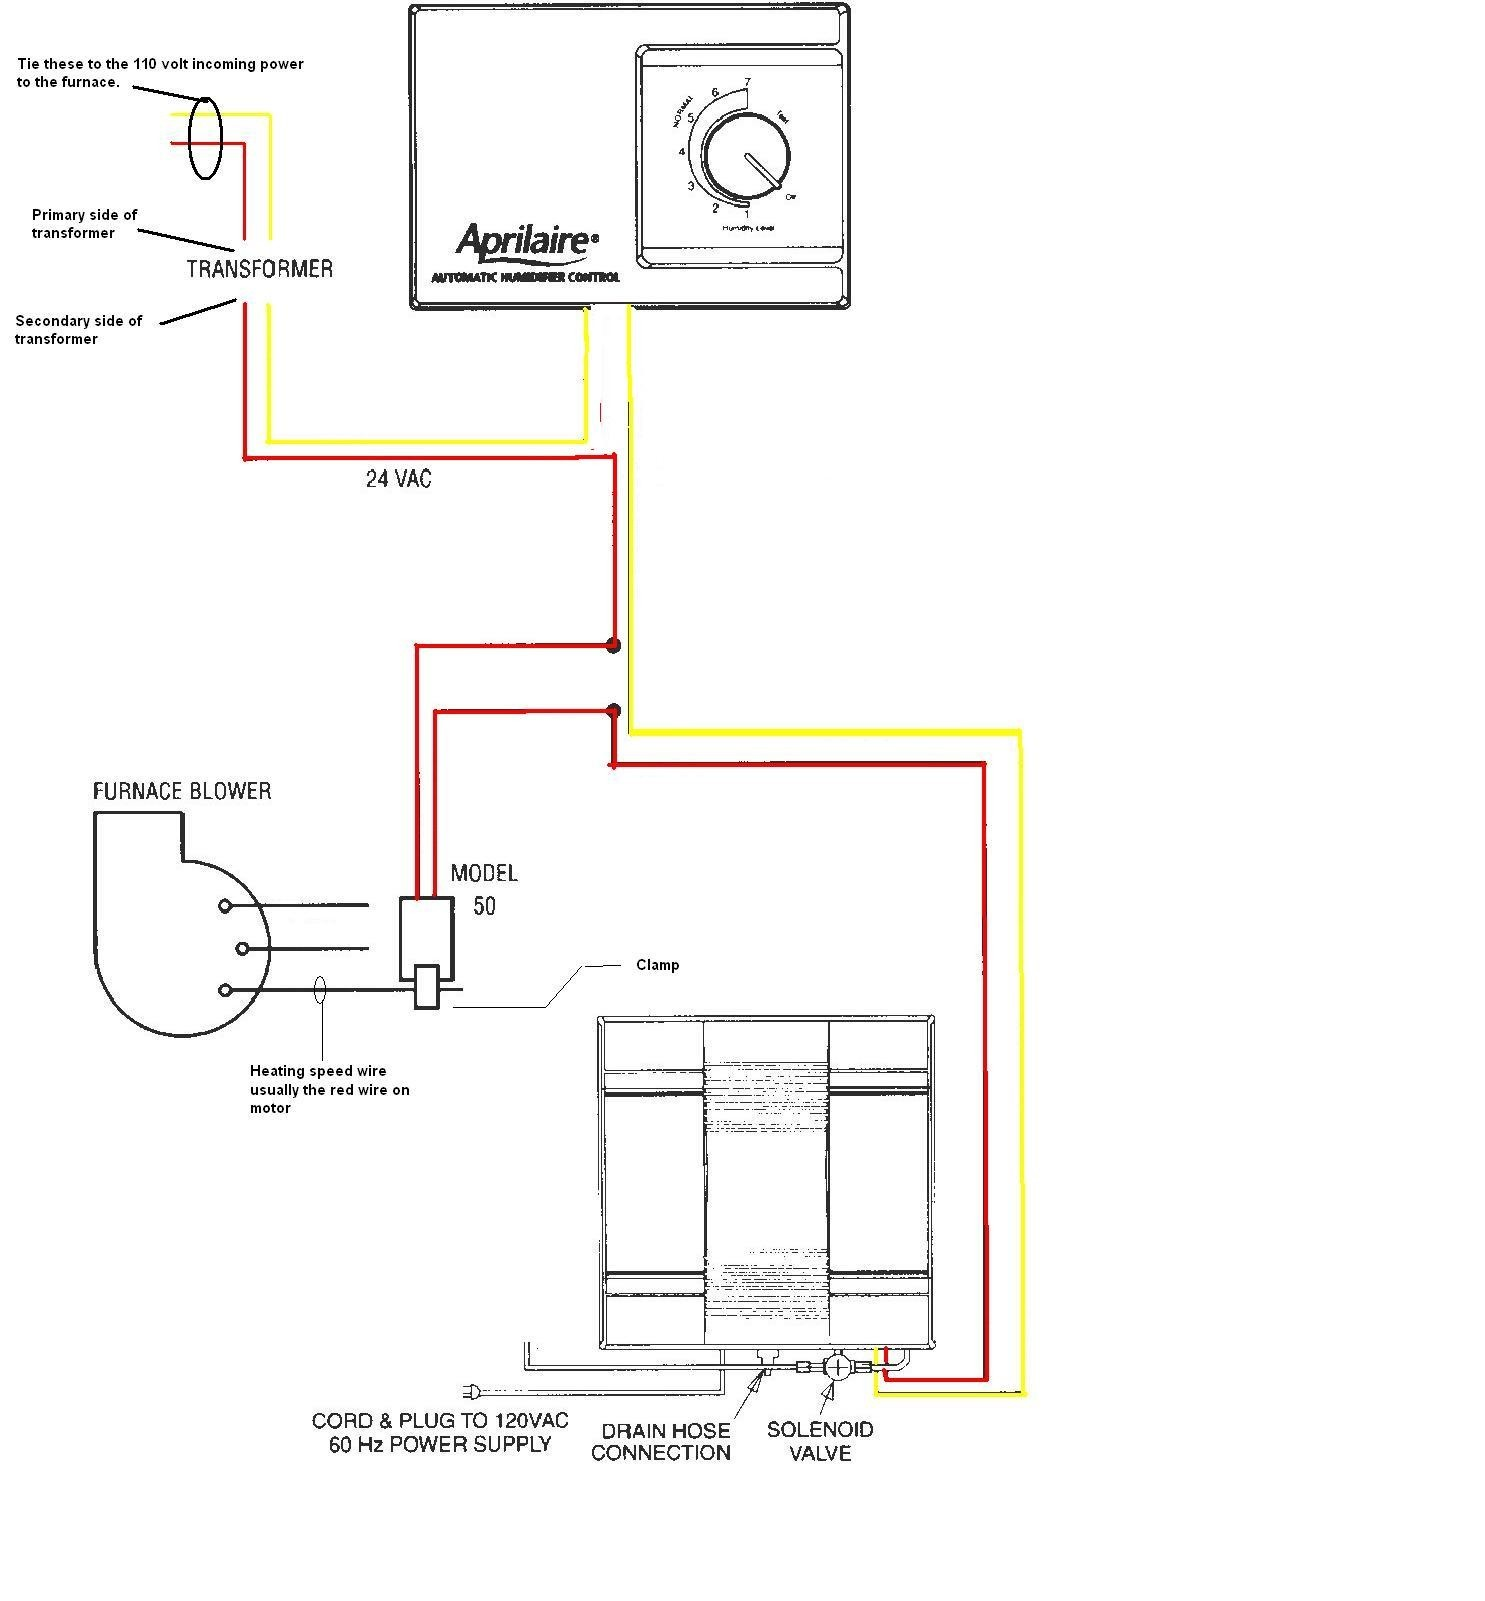 Aprilaire 760 Wiring Diagram Aprilaire Humidifier Wiring Diagram Including Aprilaire Humidistat